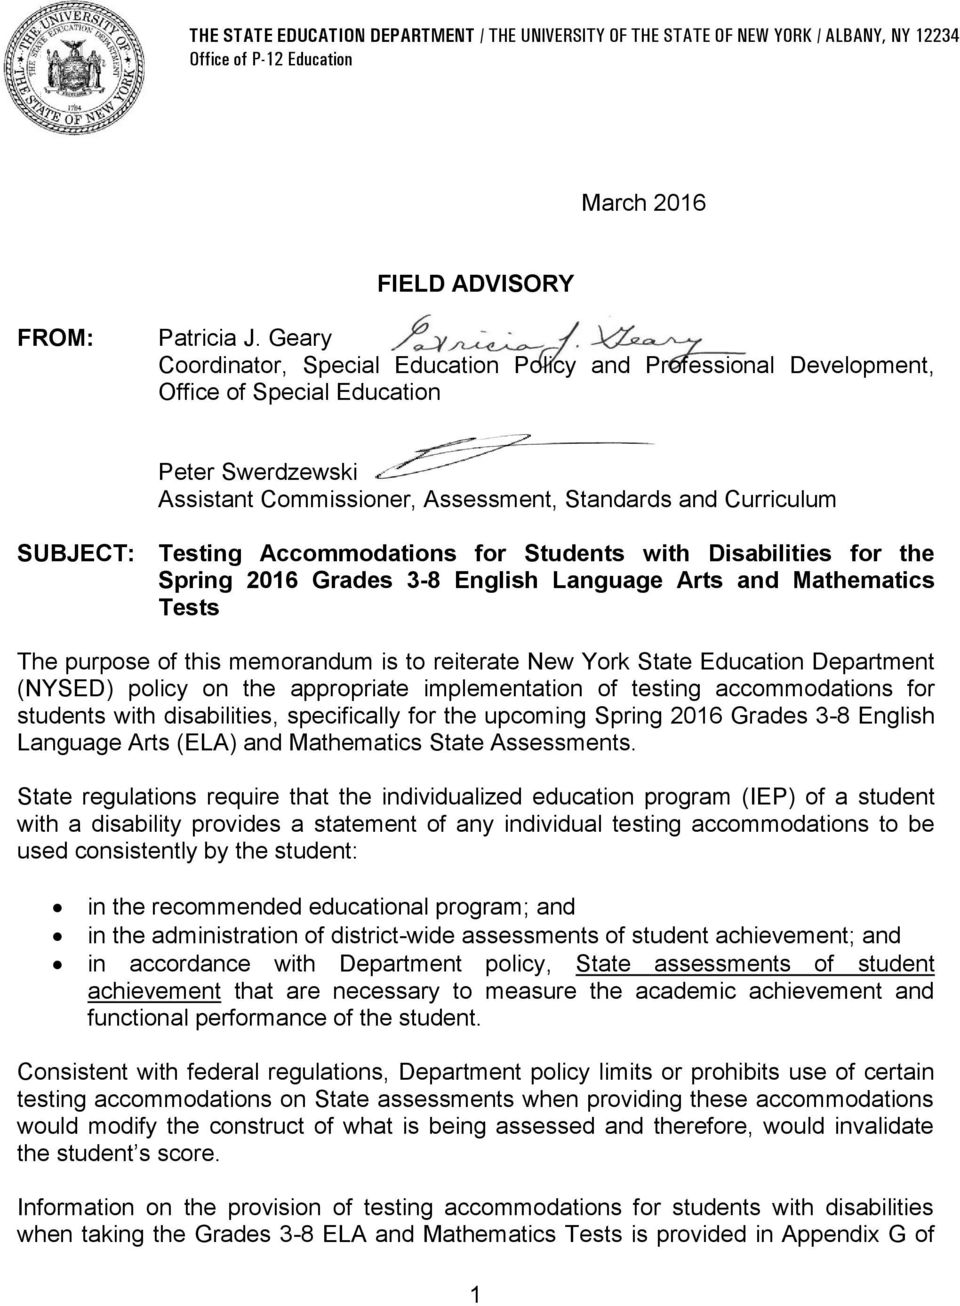 Accommodations for Students with Disabilities for the Spring 2016 Grades 3-8 English Language Arts and Mathematics Tests The purpose of this memorandum is to reiterate New York State Education